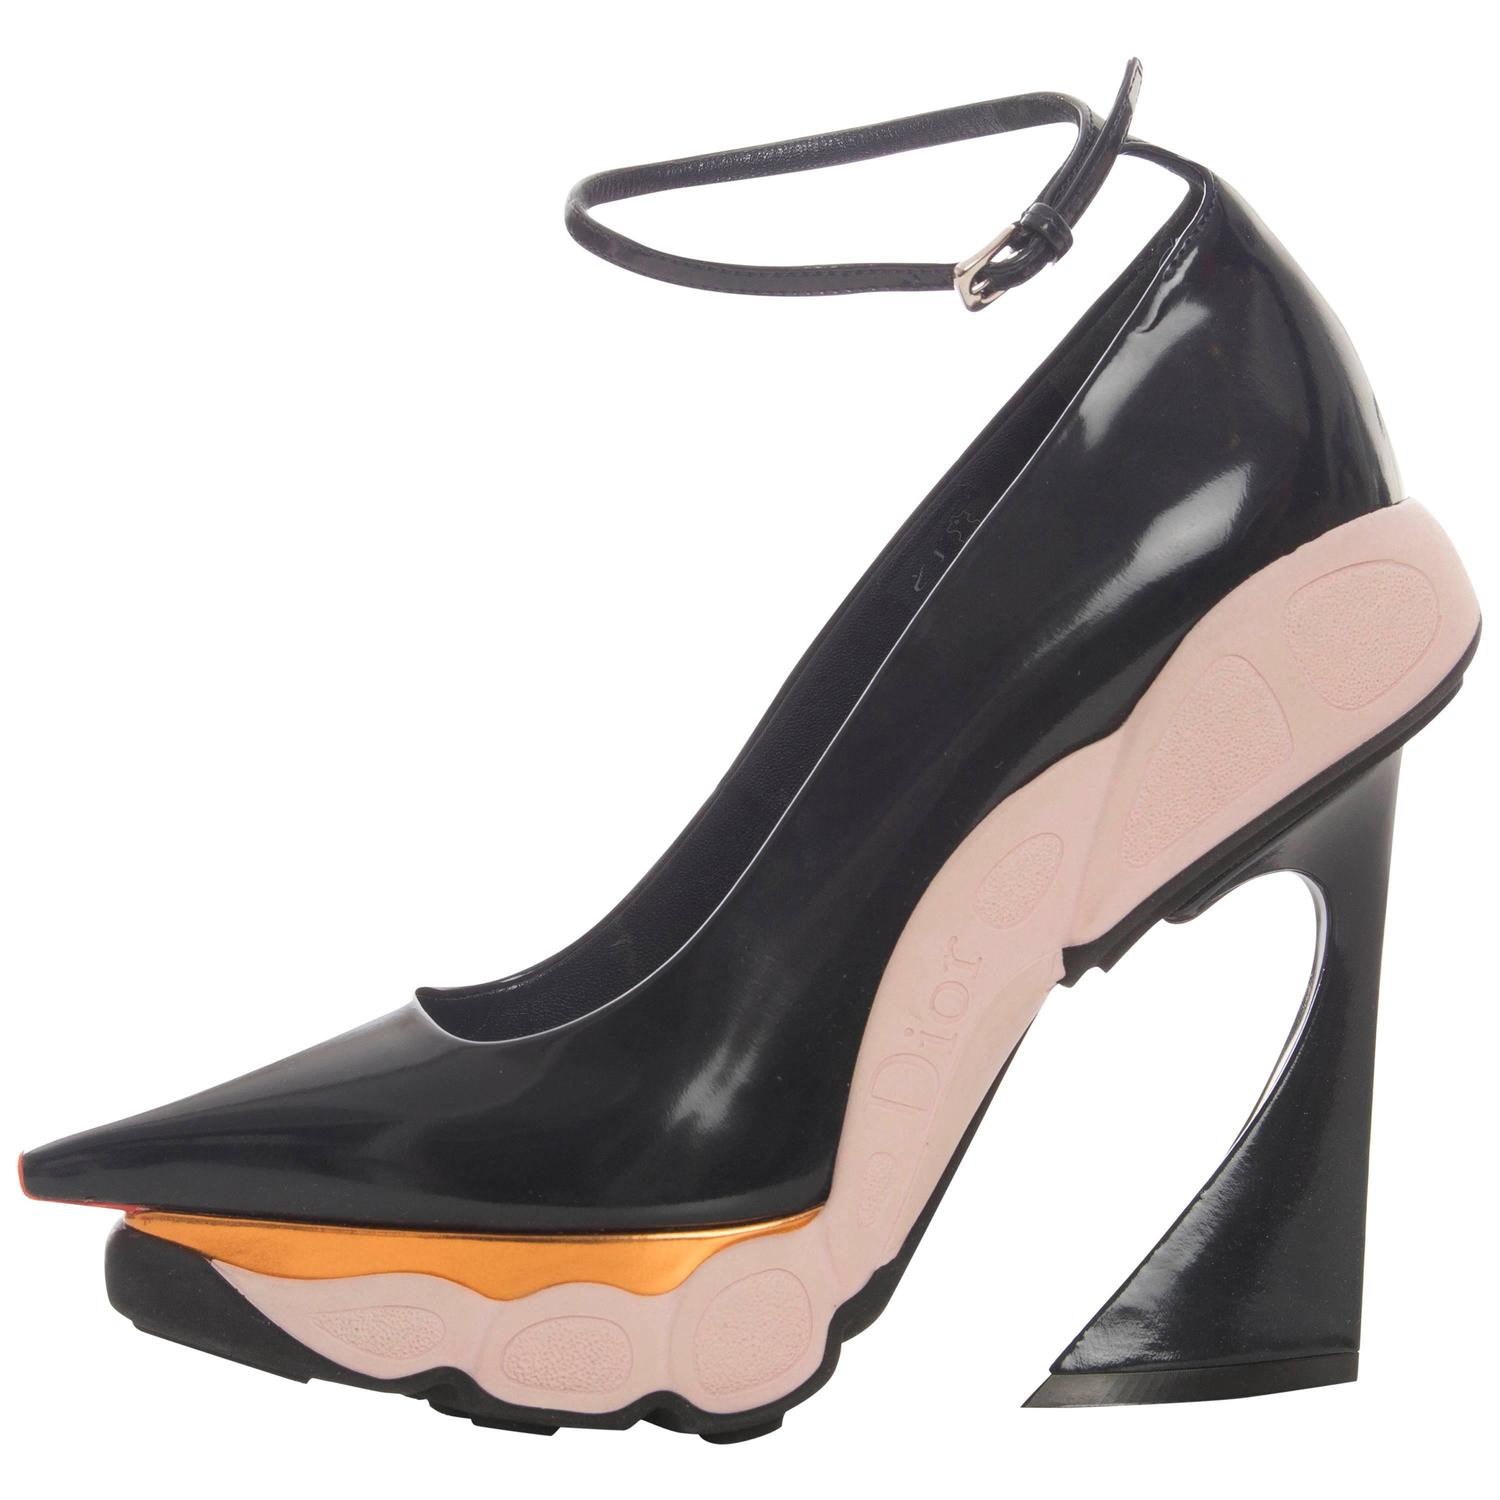 995918e44f4 Christian Dior By Raf Simons Patent Leather Runway Sneaker Pumps Fall 2014  at 1stdibs